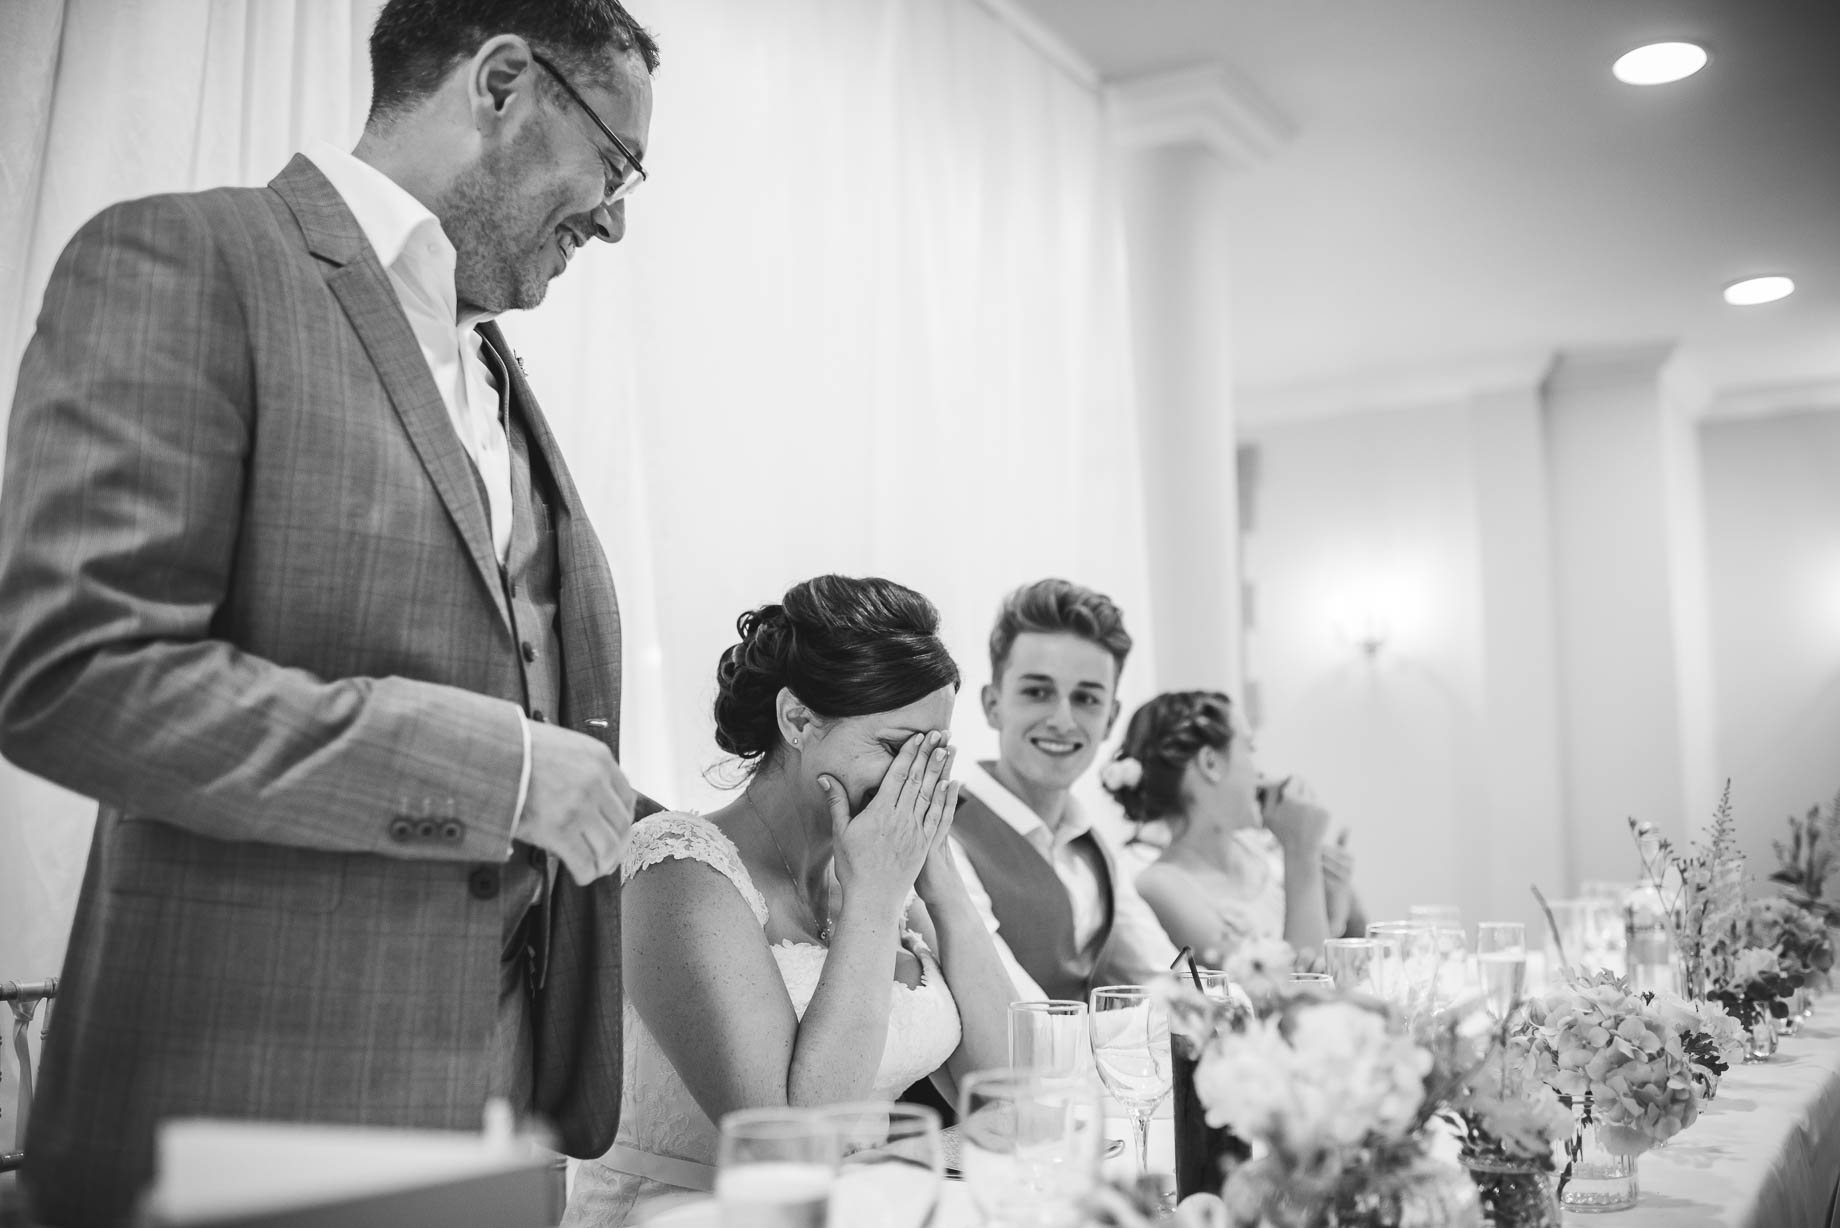 Luton Hoo wedding photography by Guy Collier Photography - Lauren and Gem (135 of 178)